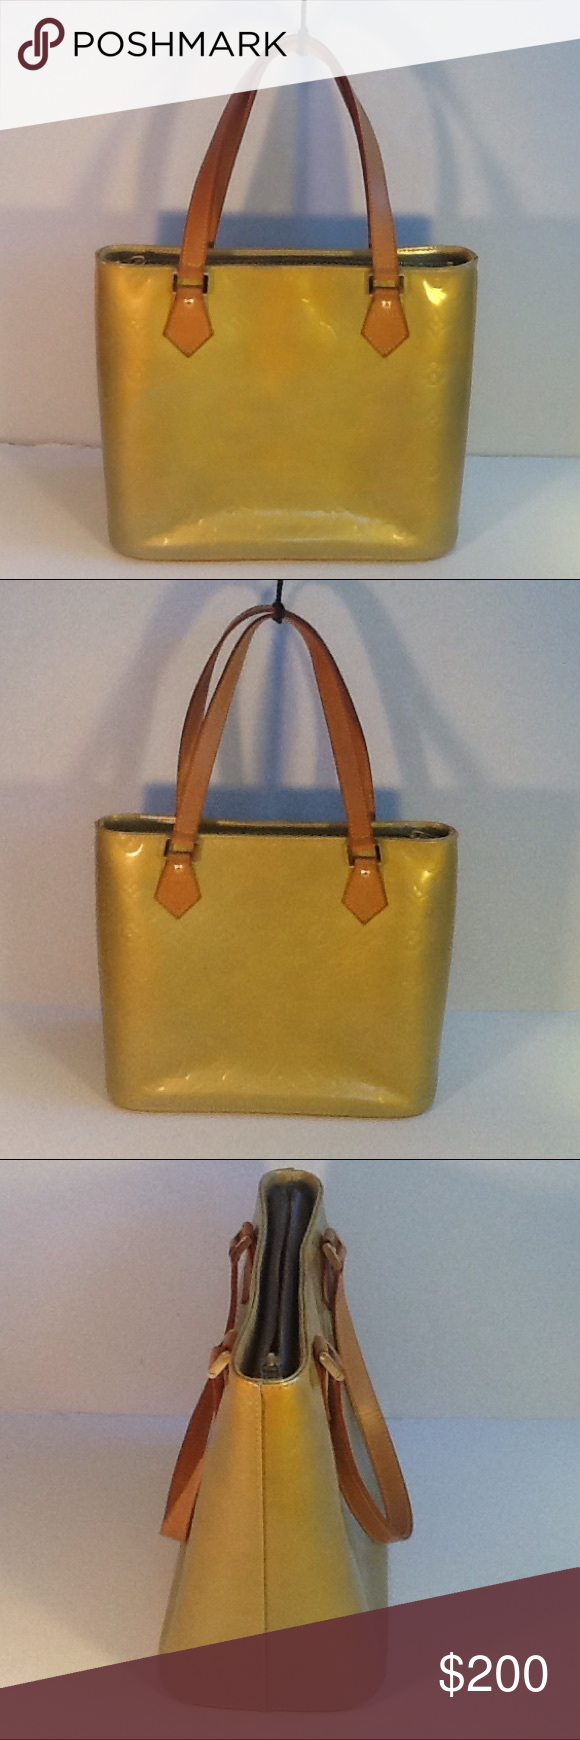 Authentic Louis Vuitton Vernis Houston Lime Bag. The color is line. Some  very light discoloration and stains are on the bag. The linen and straps  are good 3b9d0938b4071